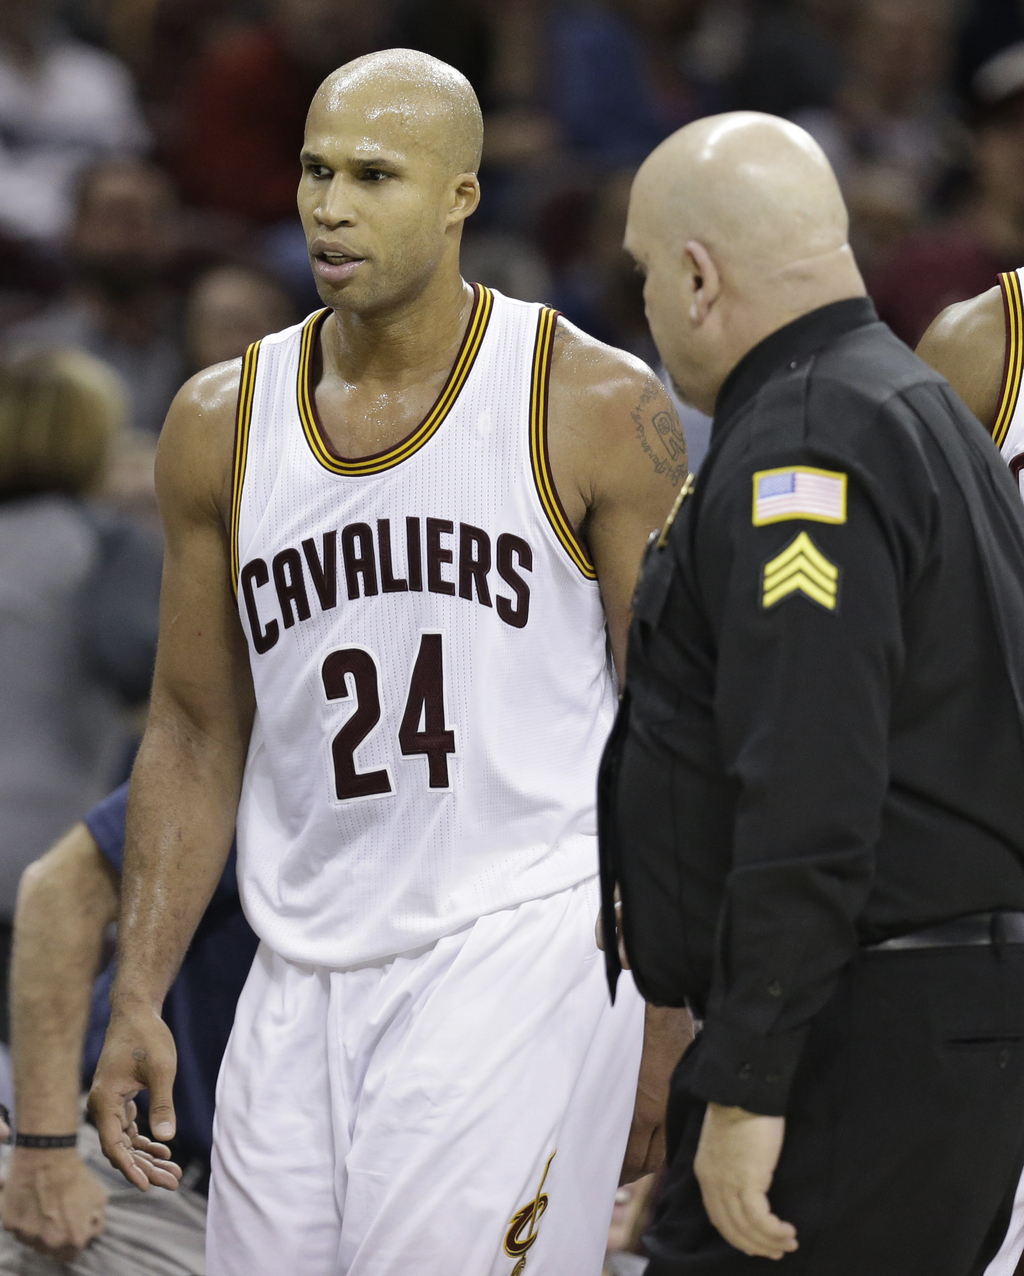 Cleveland Cavaliers' Richard Jefferson is escorted off the court after being ejected during the second half of an NBA basketball game a...